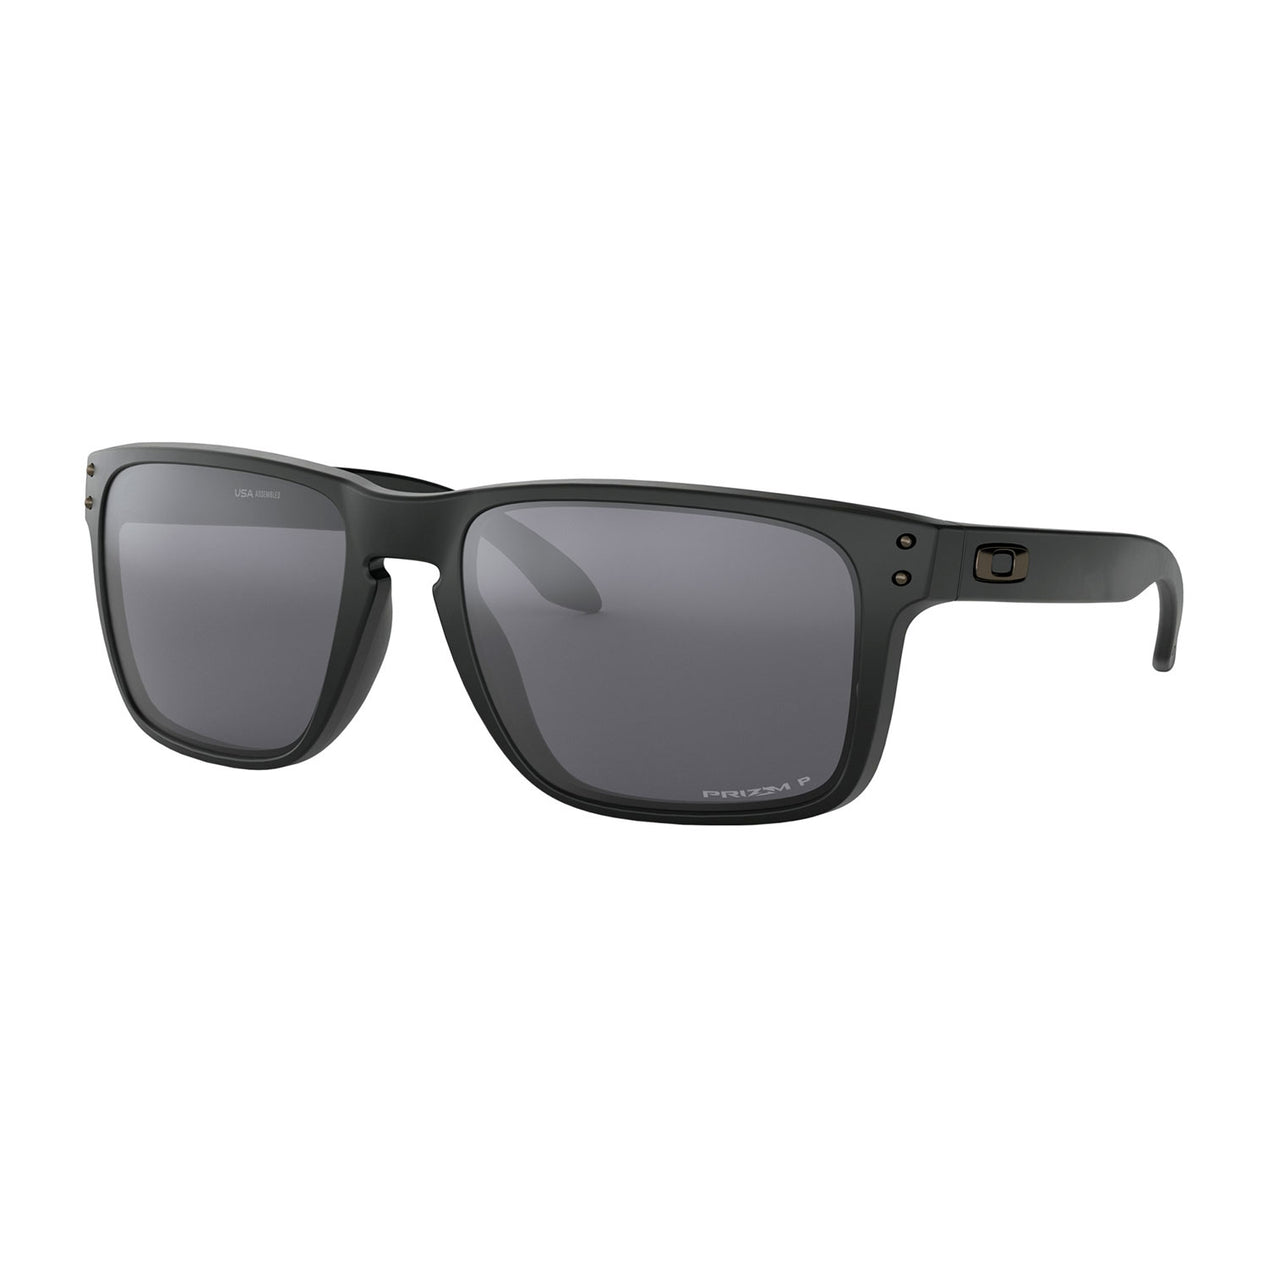 164bbbc960b9f Holbrook XL Matte Black - Prizm Black Iridium Polarized Lens Sunglasses No  Color ...